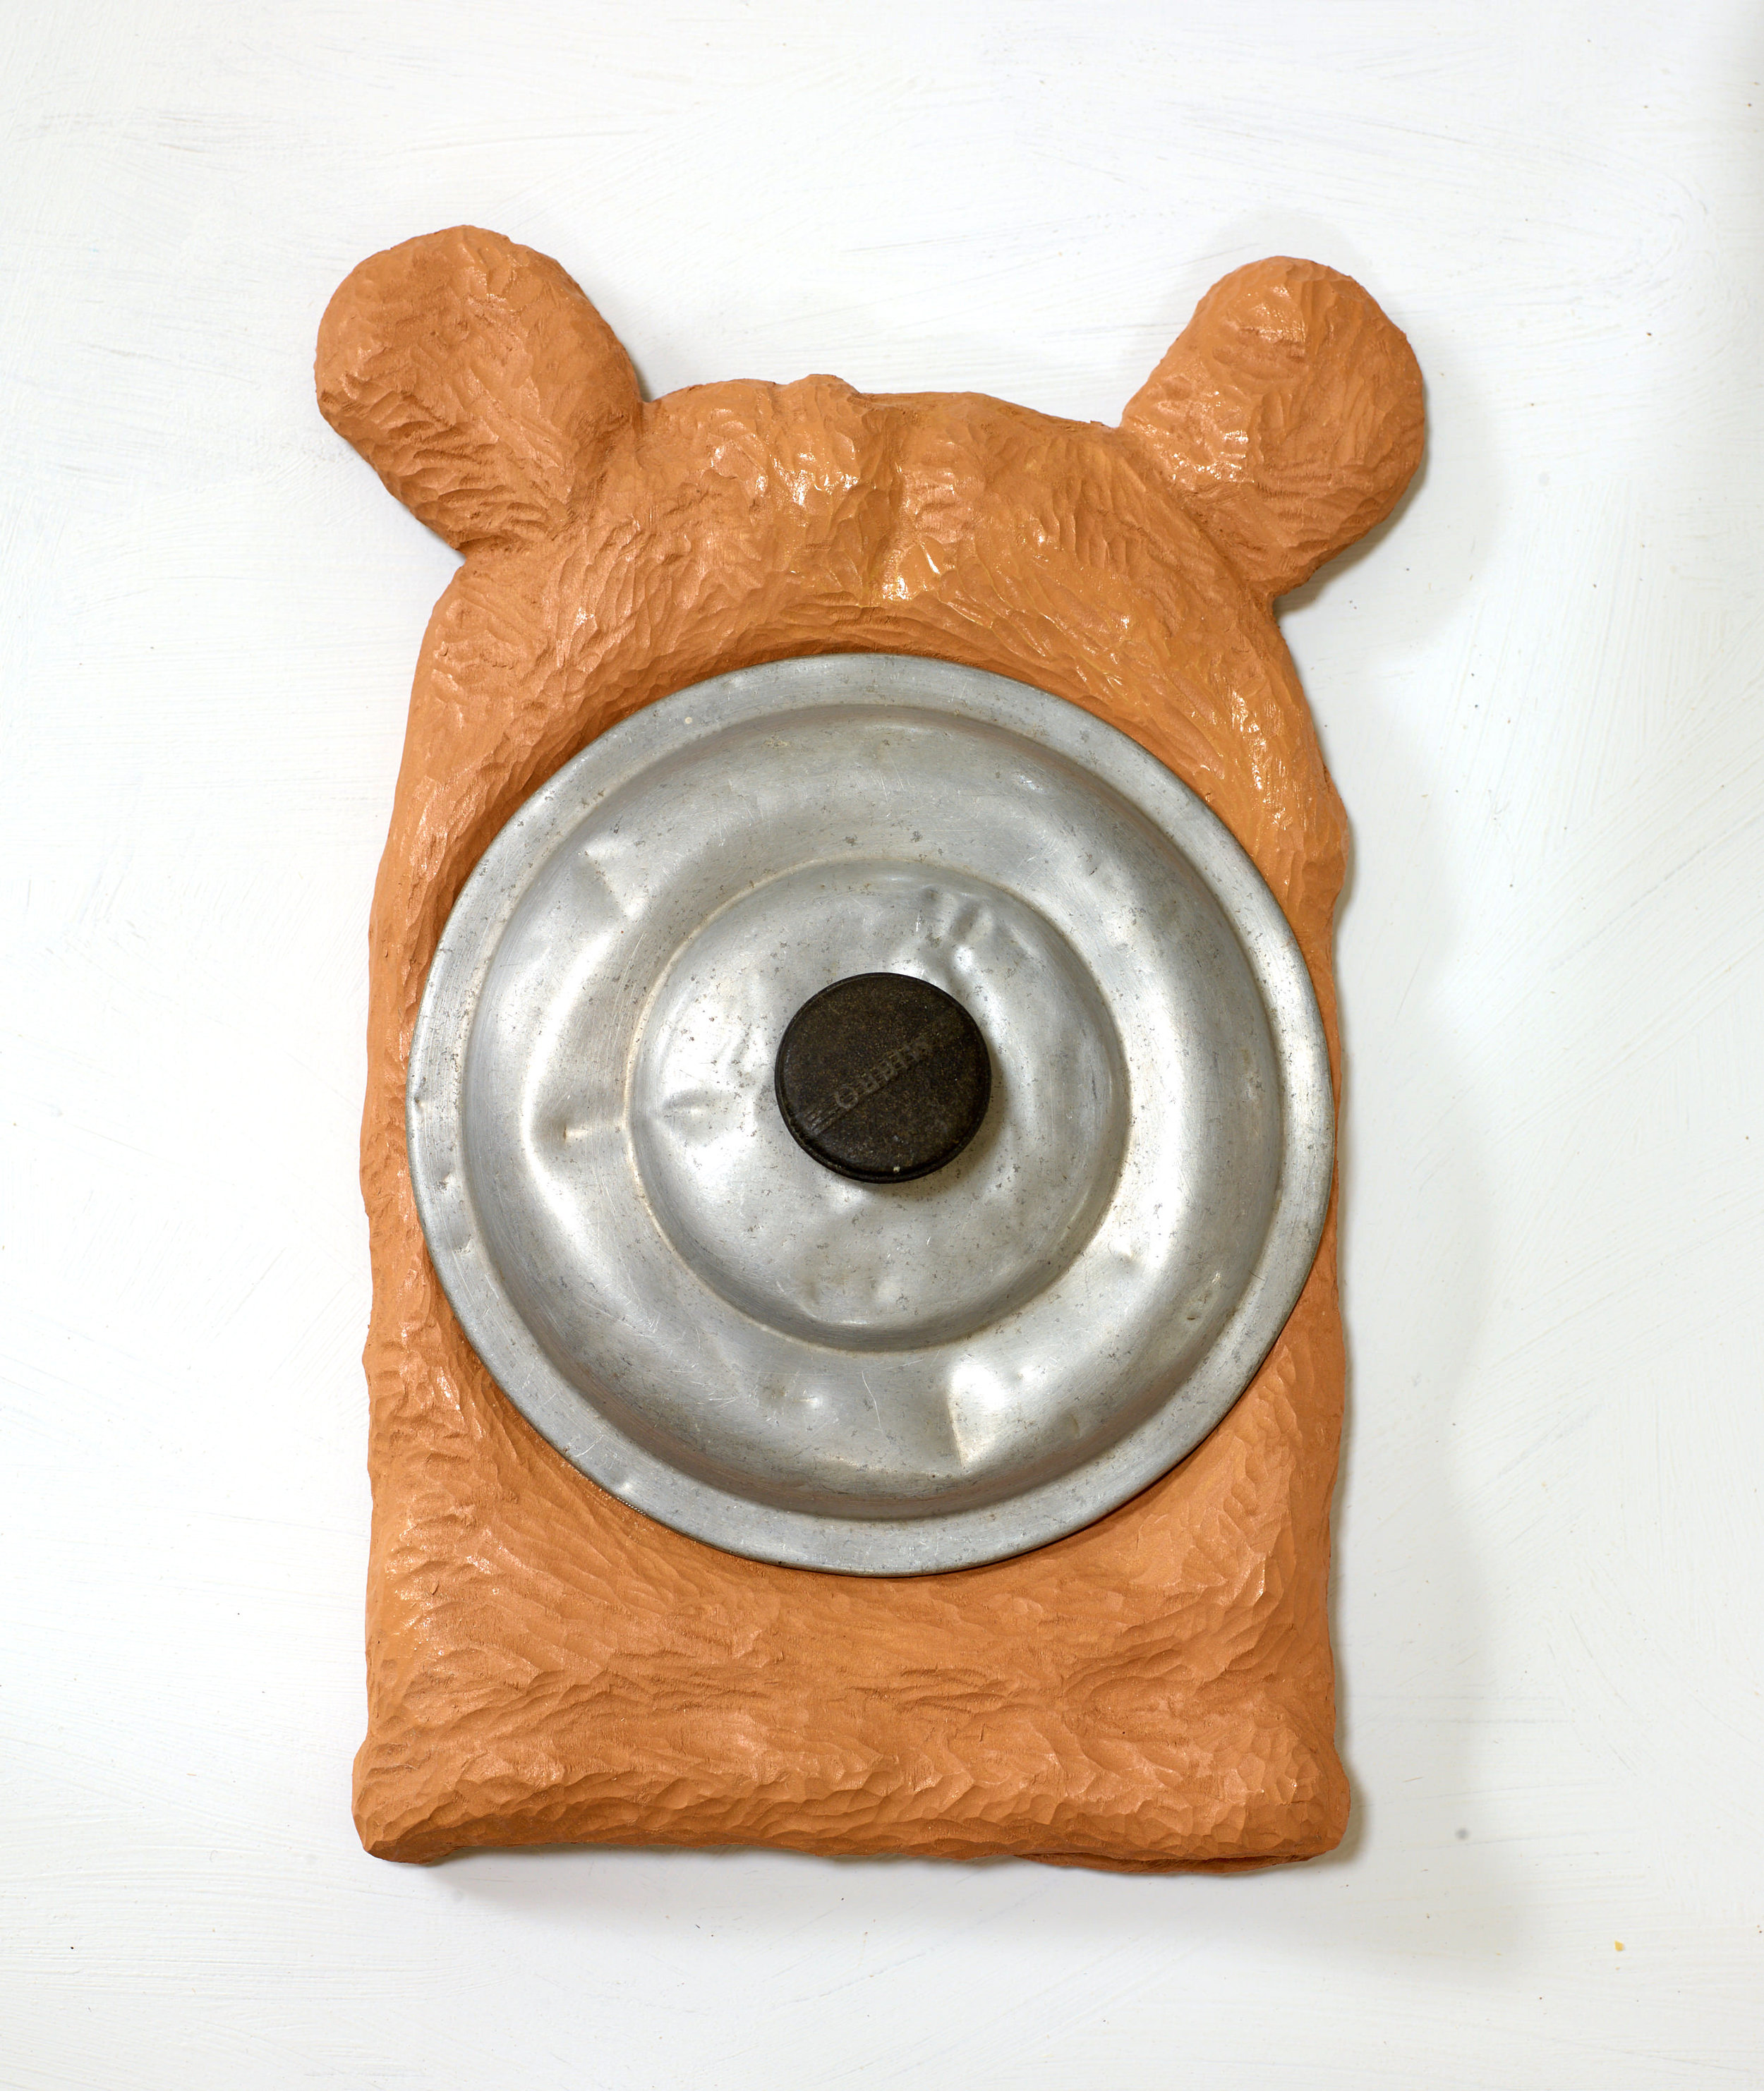 mammal, carved and painted wood with pot lid, 2016